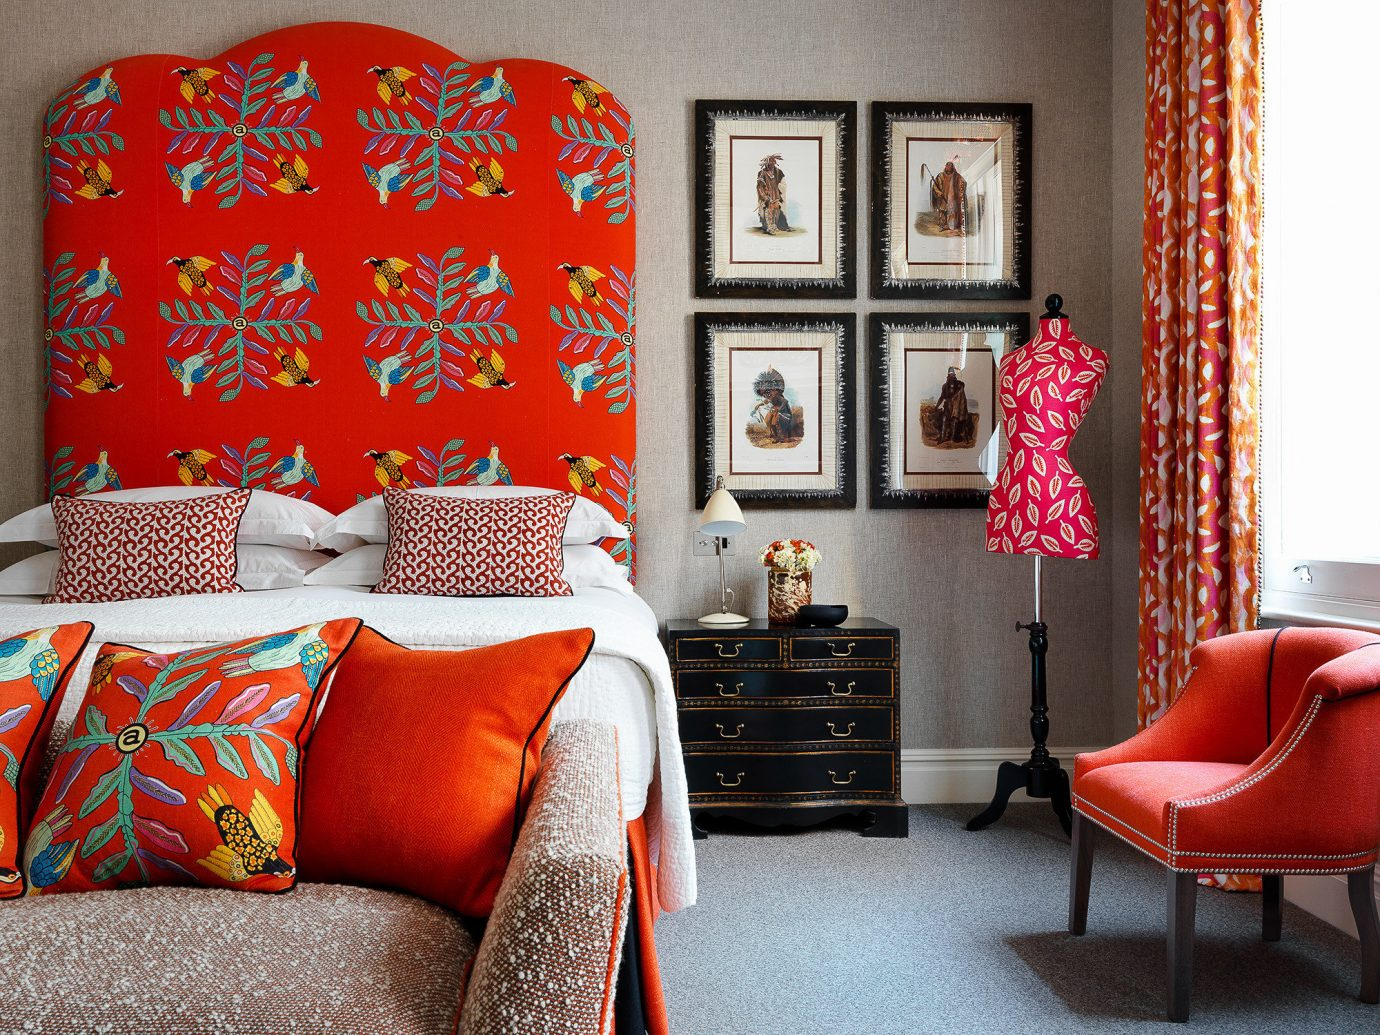 Boutique Hotels London Romantic Hotels red indoor room sofa floor chair living room Living interior design wall home textile colorful furniture pattern couch window Bedroom curtain decor linens orange bed sheet bright decorated table colored leather